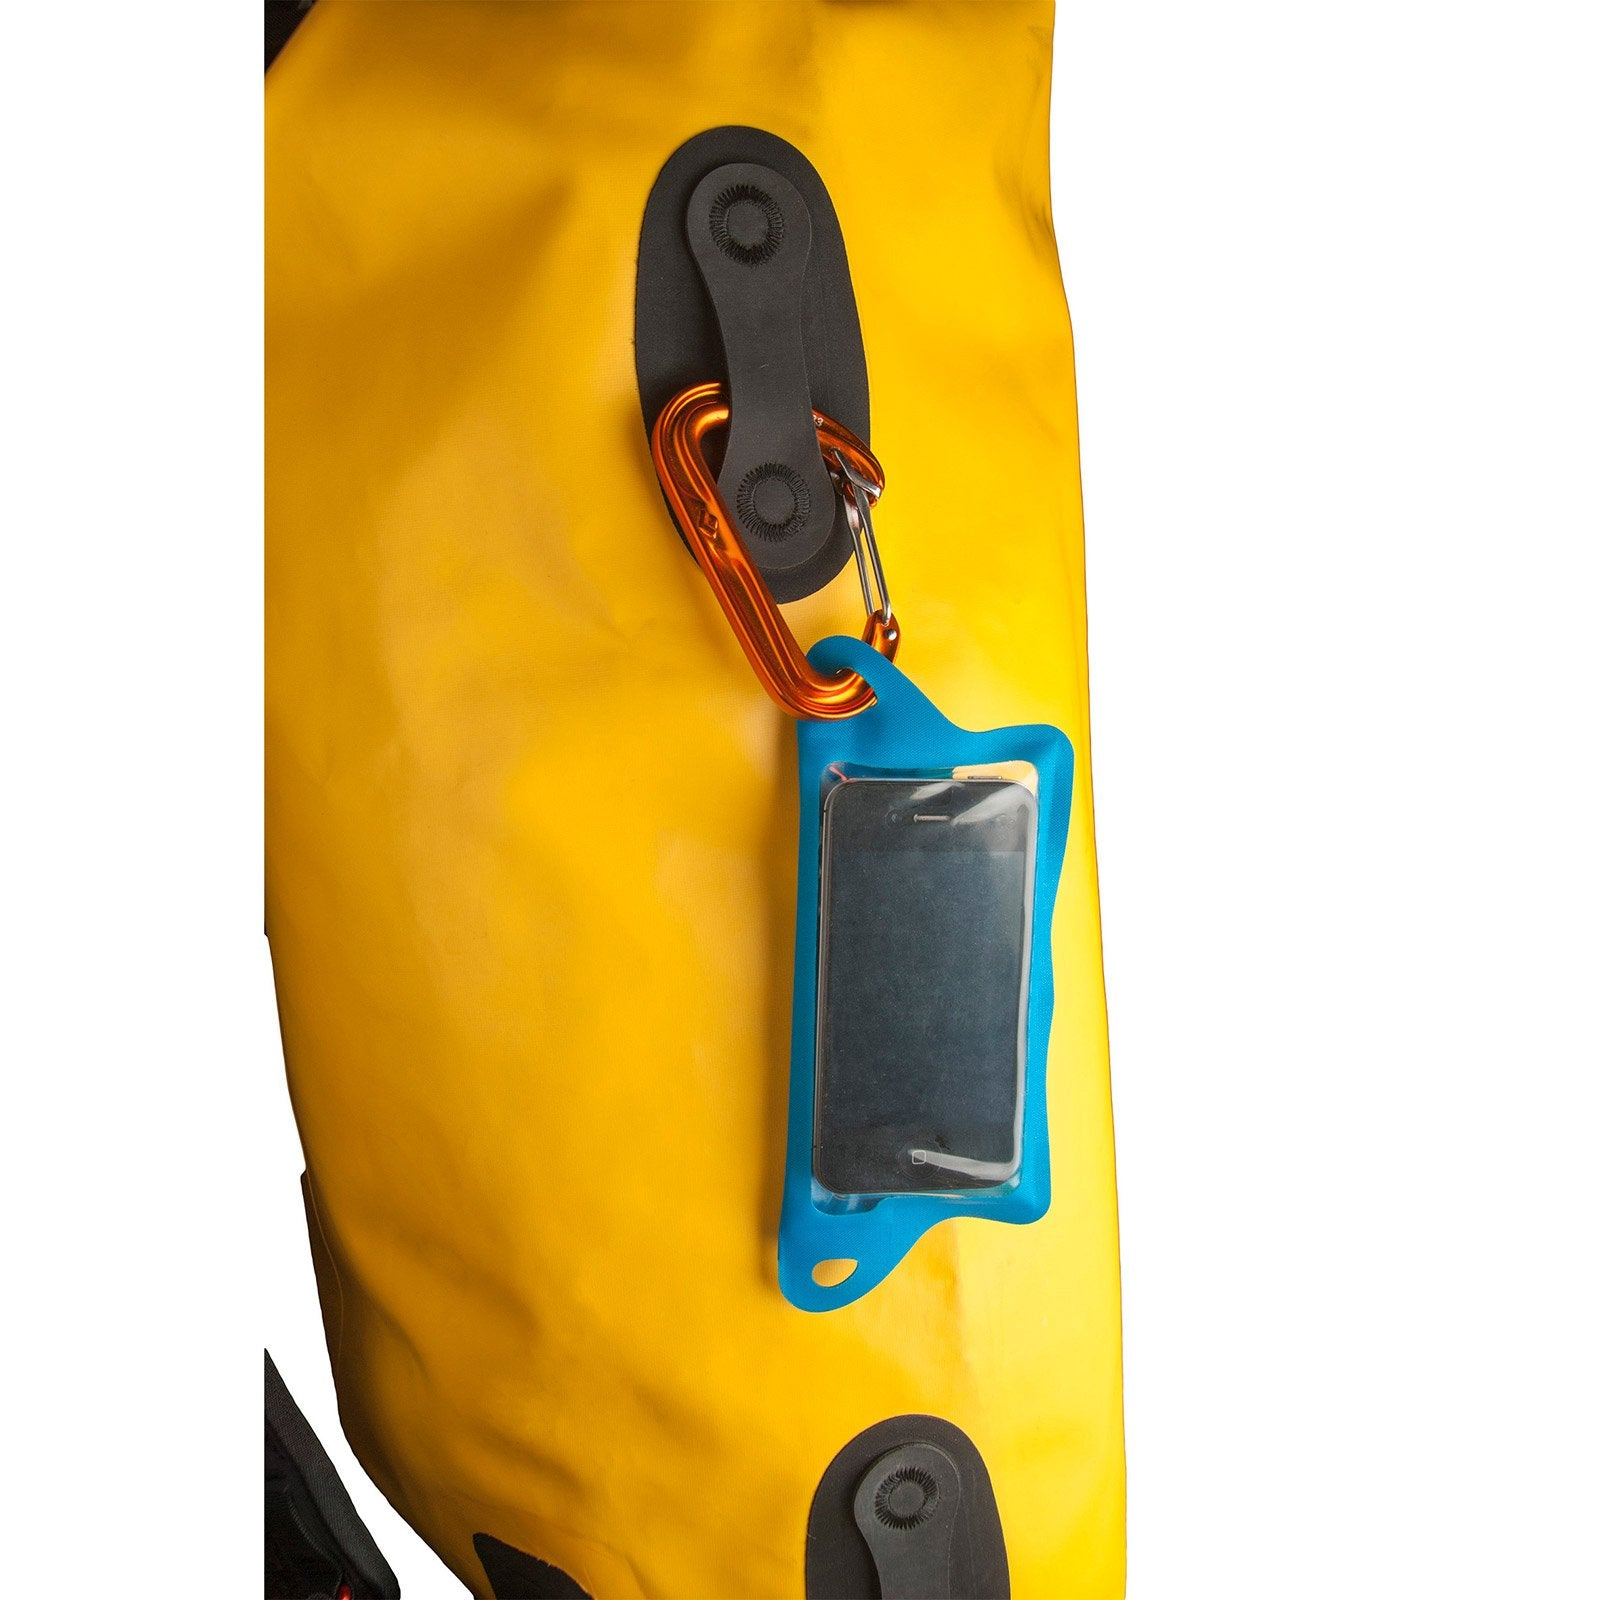 TPU Waterproof Case for Phone attached to dry bag